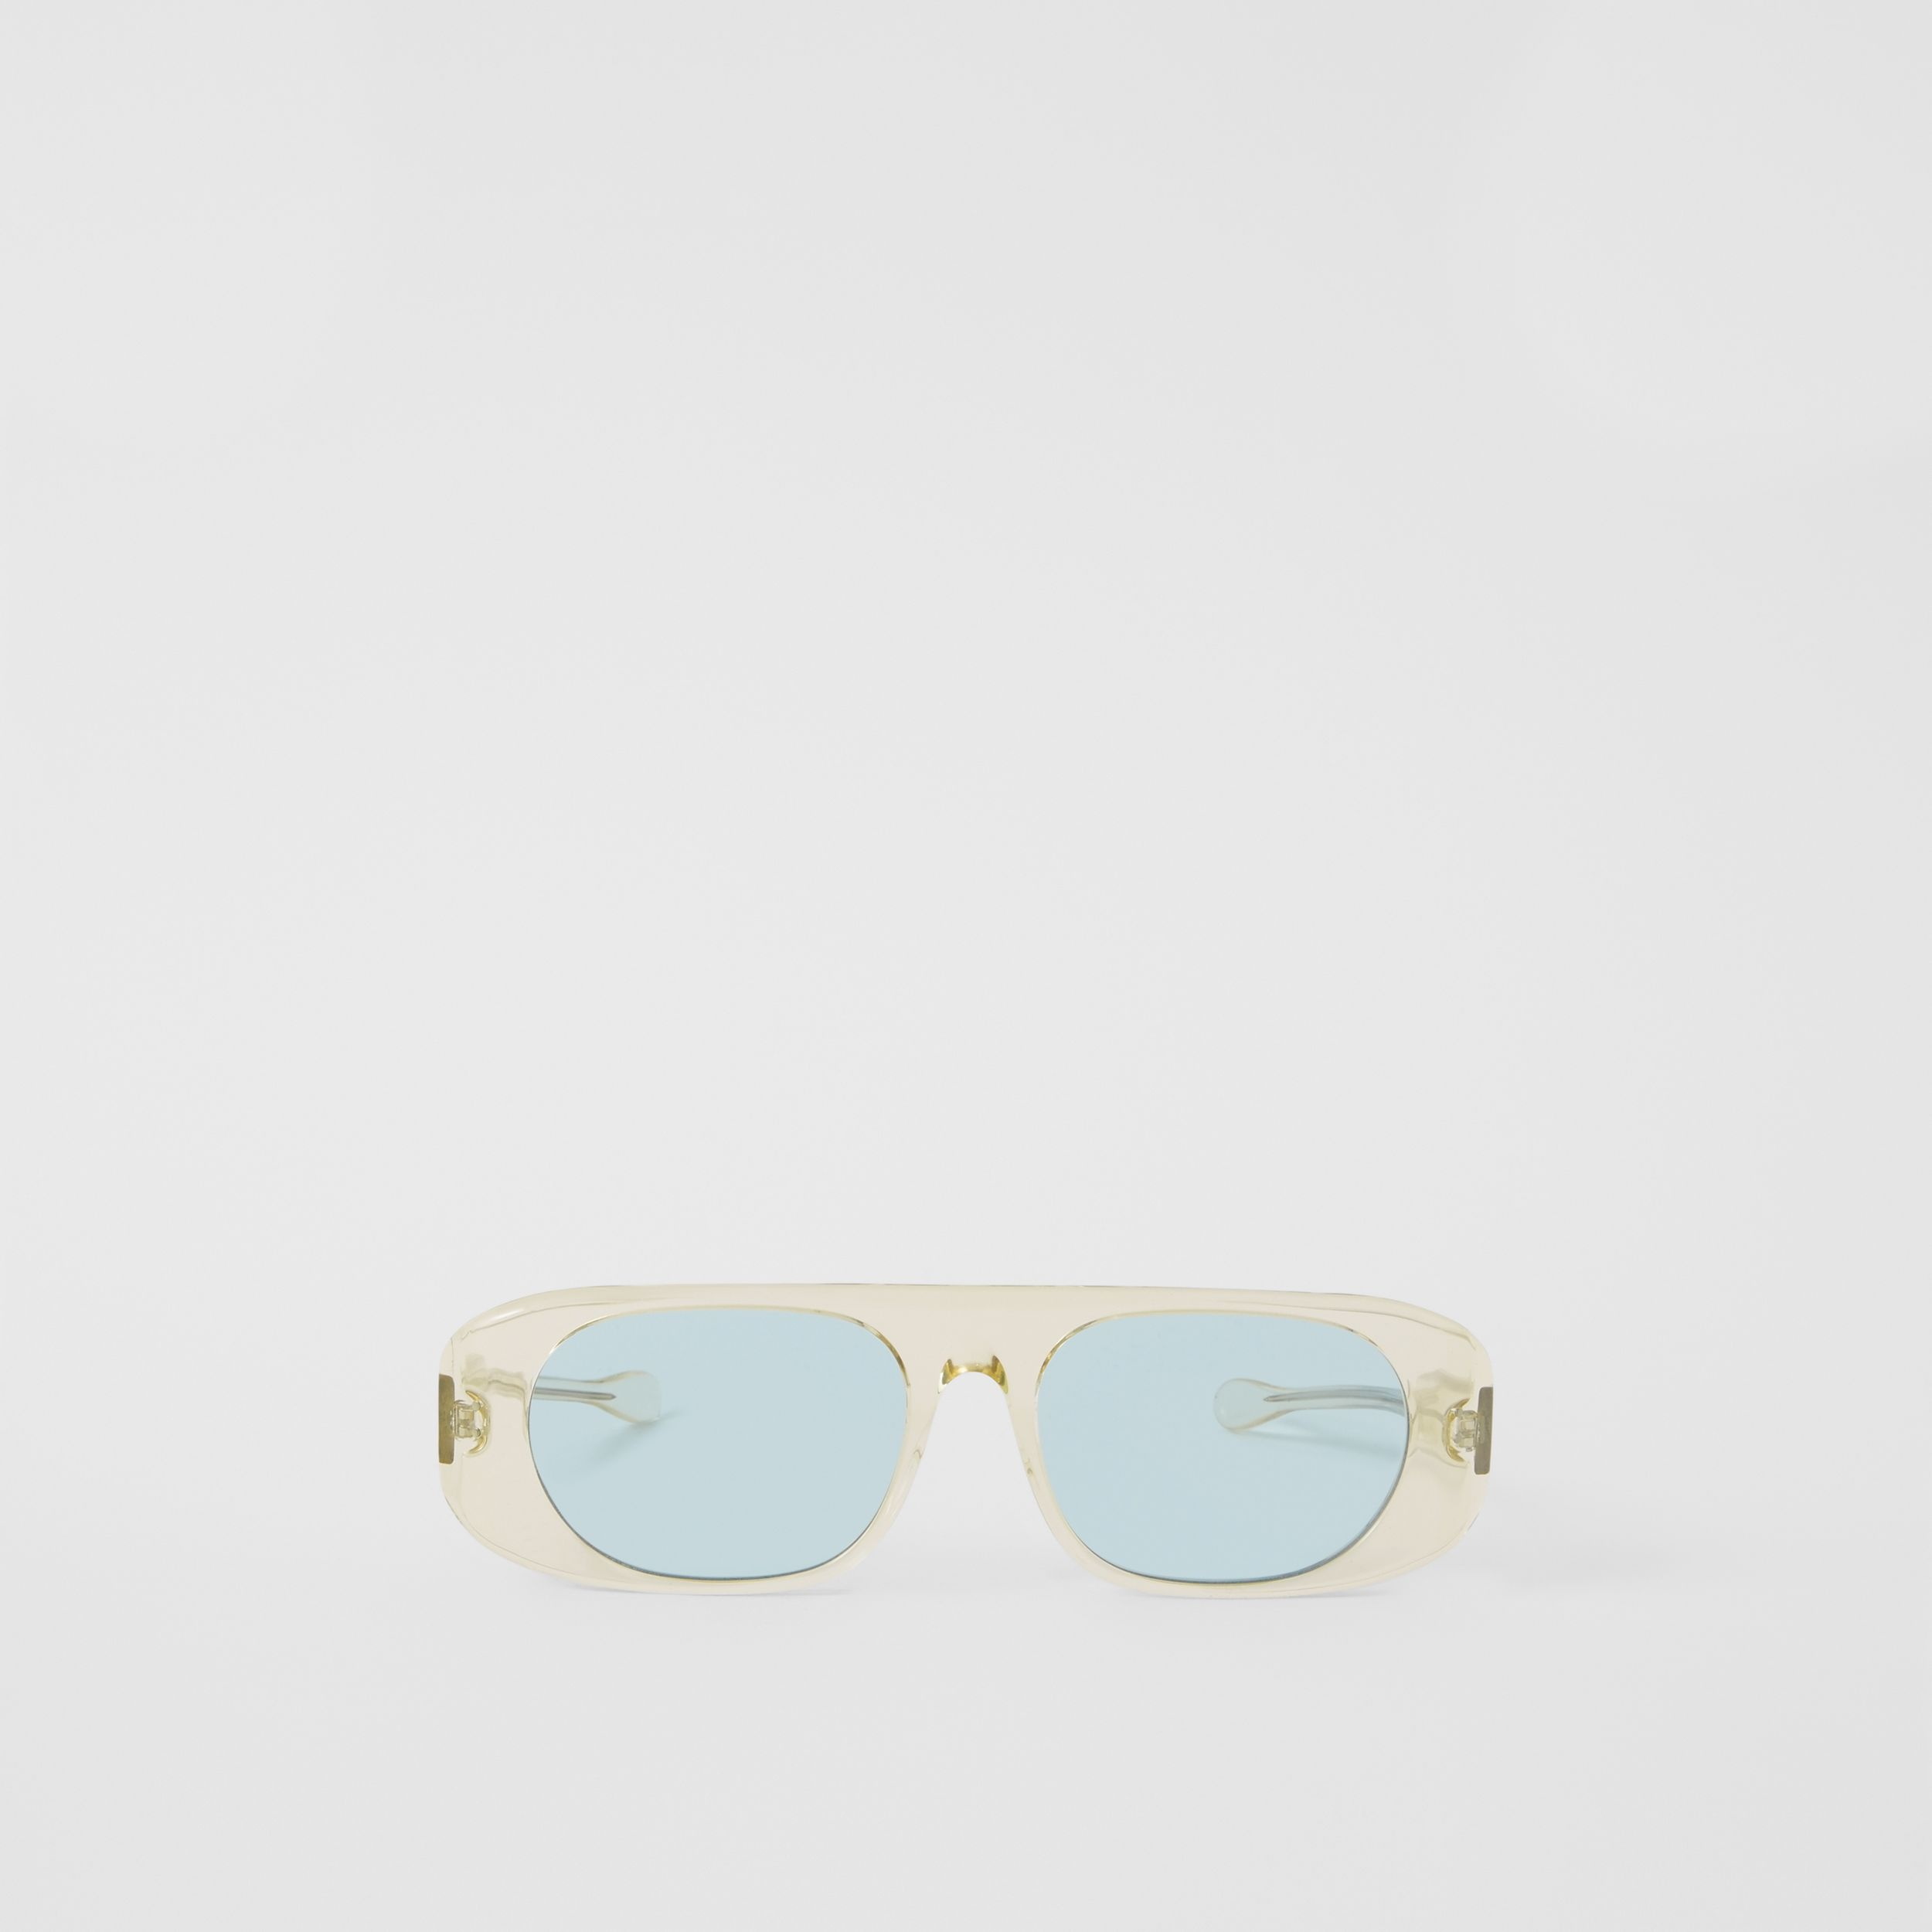 Blake Sunglasses in Transparent Champagne | Burberry - 1